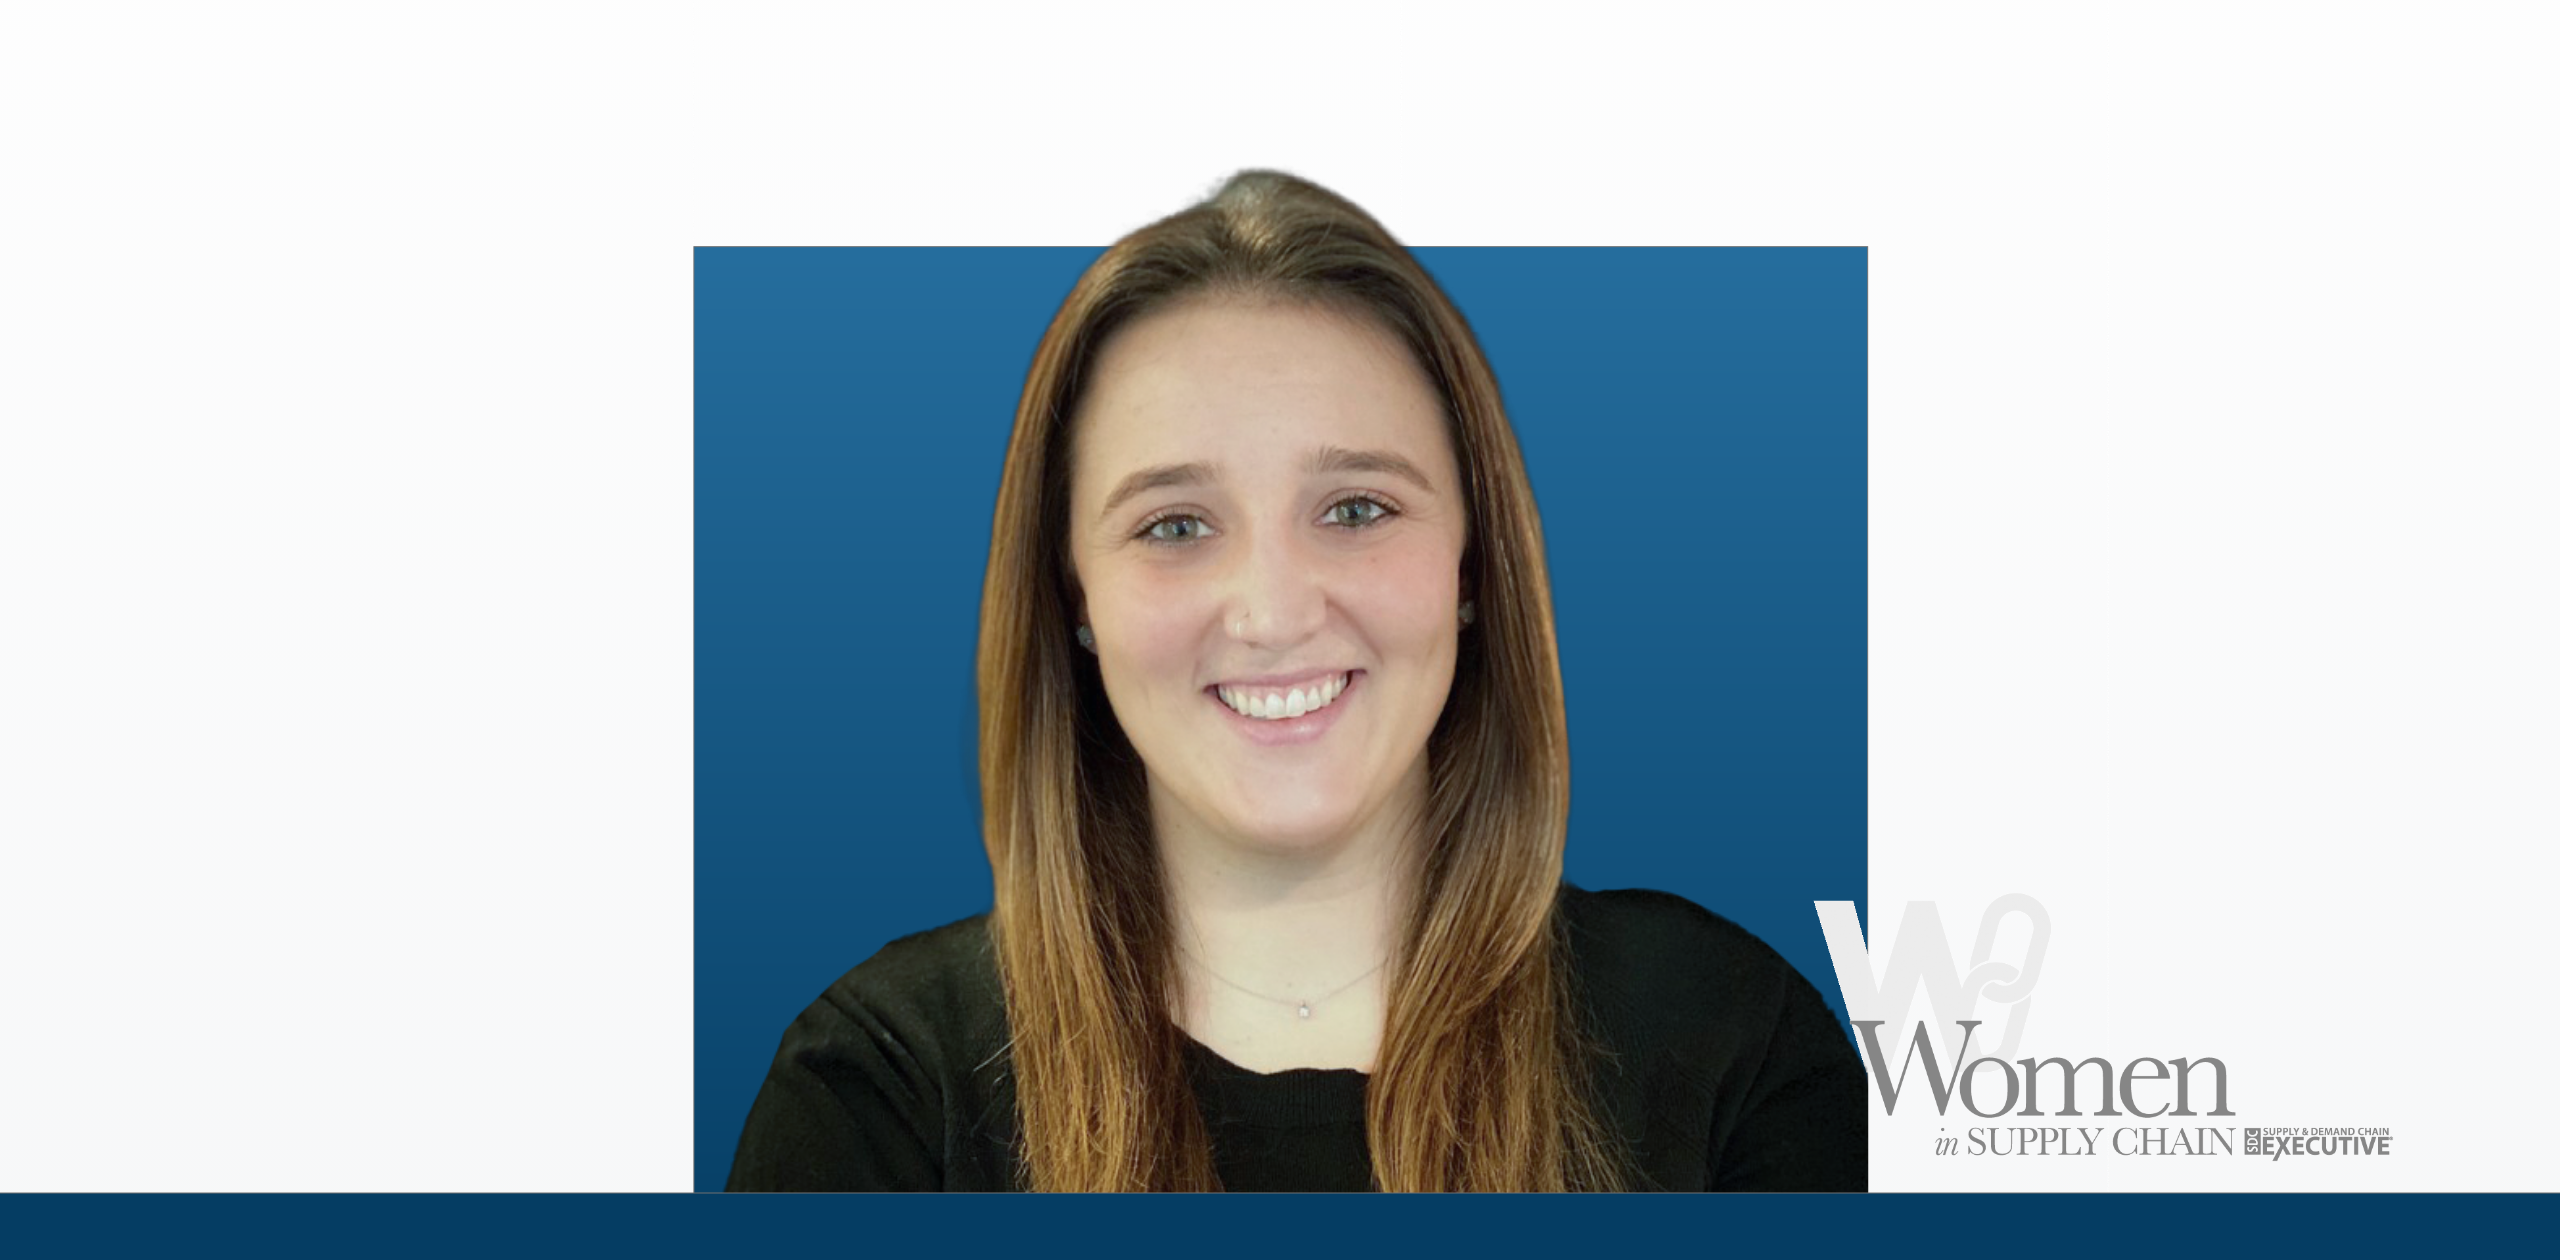 Jenna Frey wins 2021 women in supply chain award while working for Whitebox Logistics, Fulfillment, and Ecommerce Optimization Company